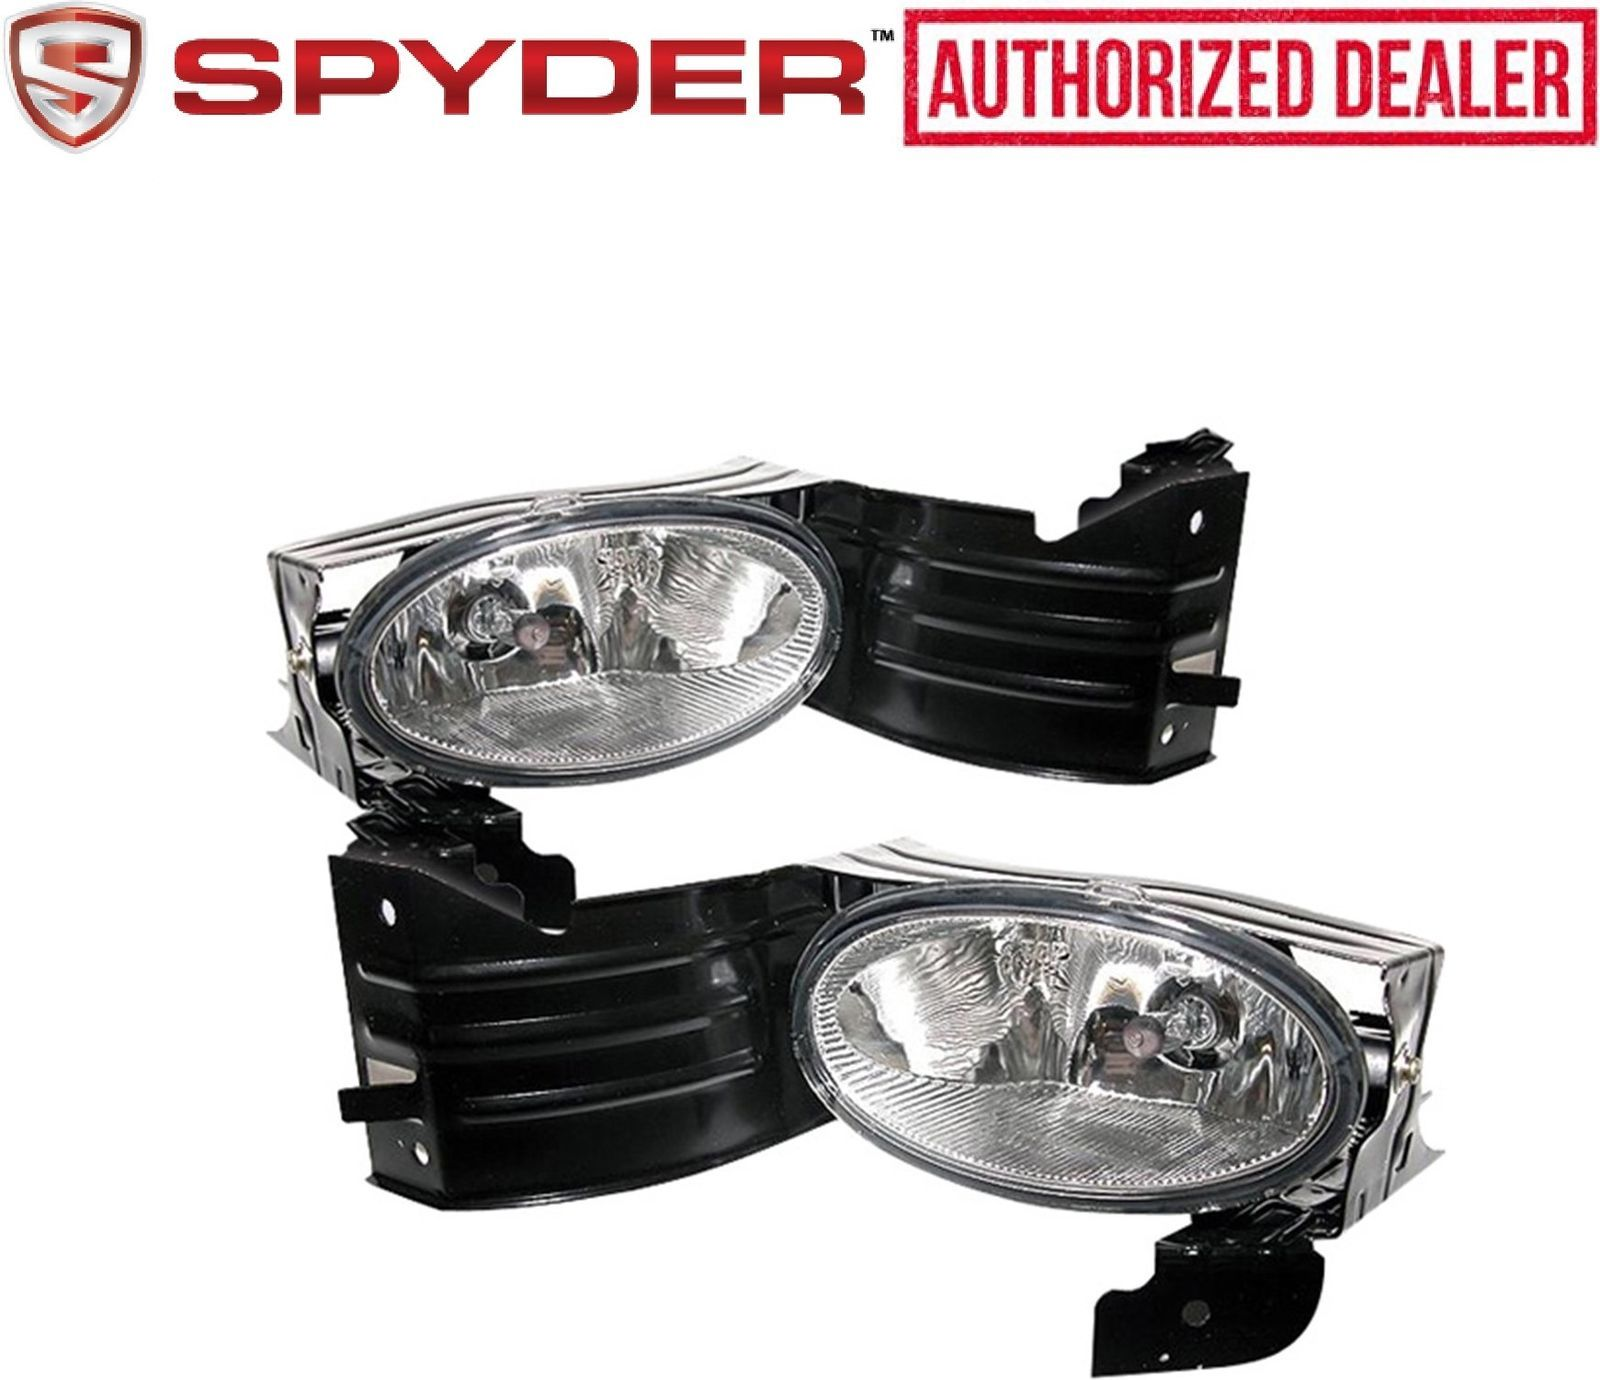 Spyder Auto Fog Lights Fits 08 09 Accord and 50 similar items